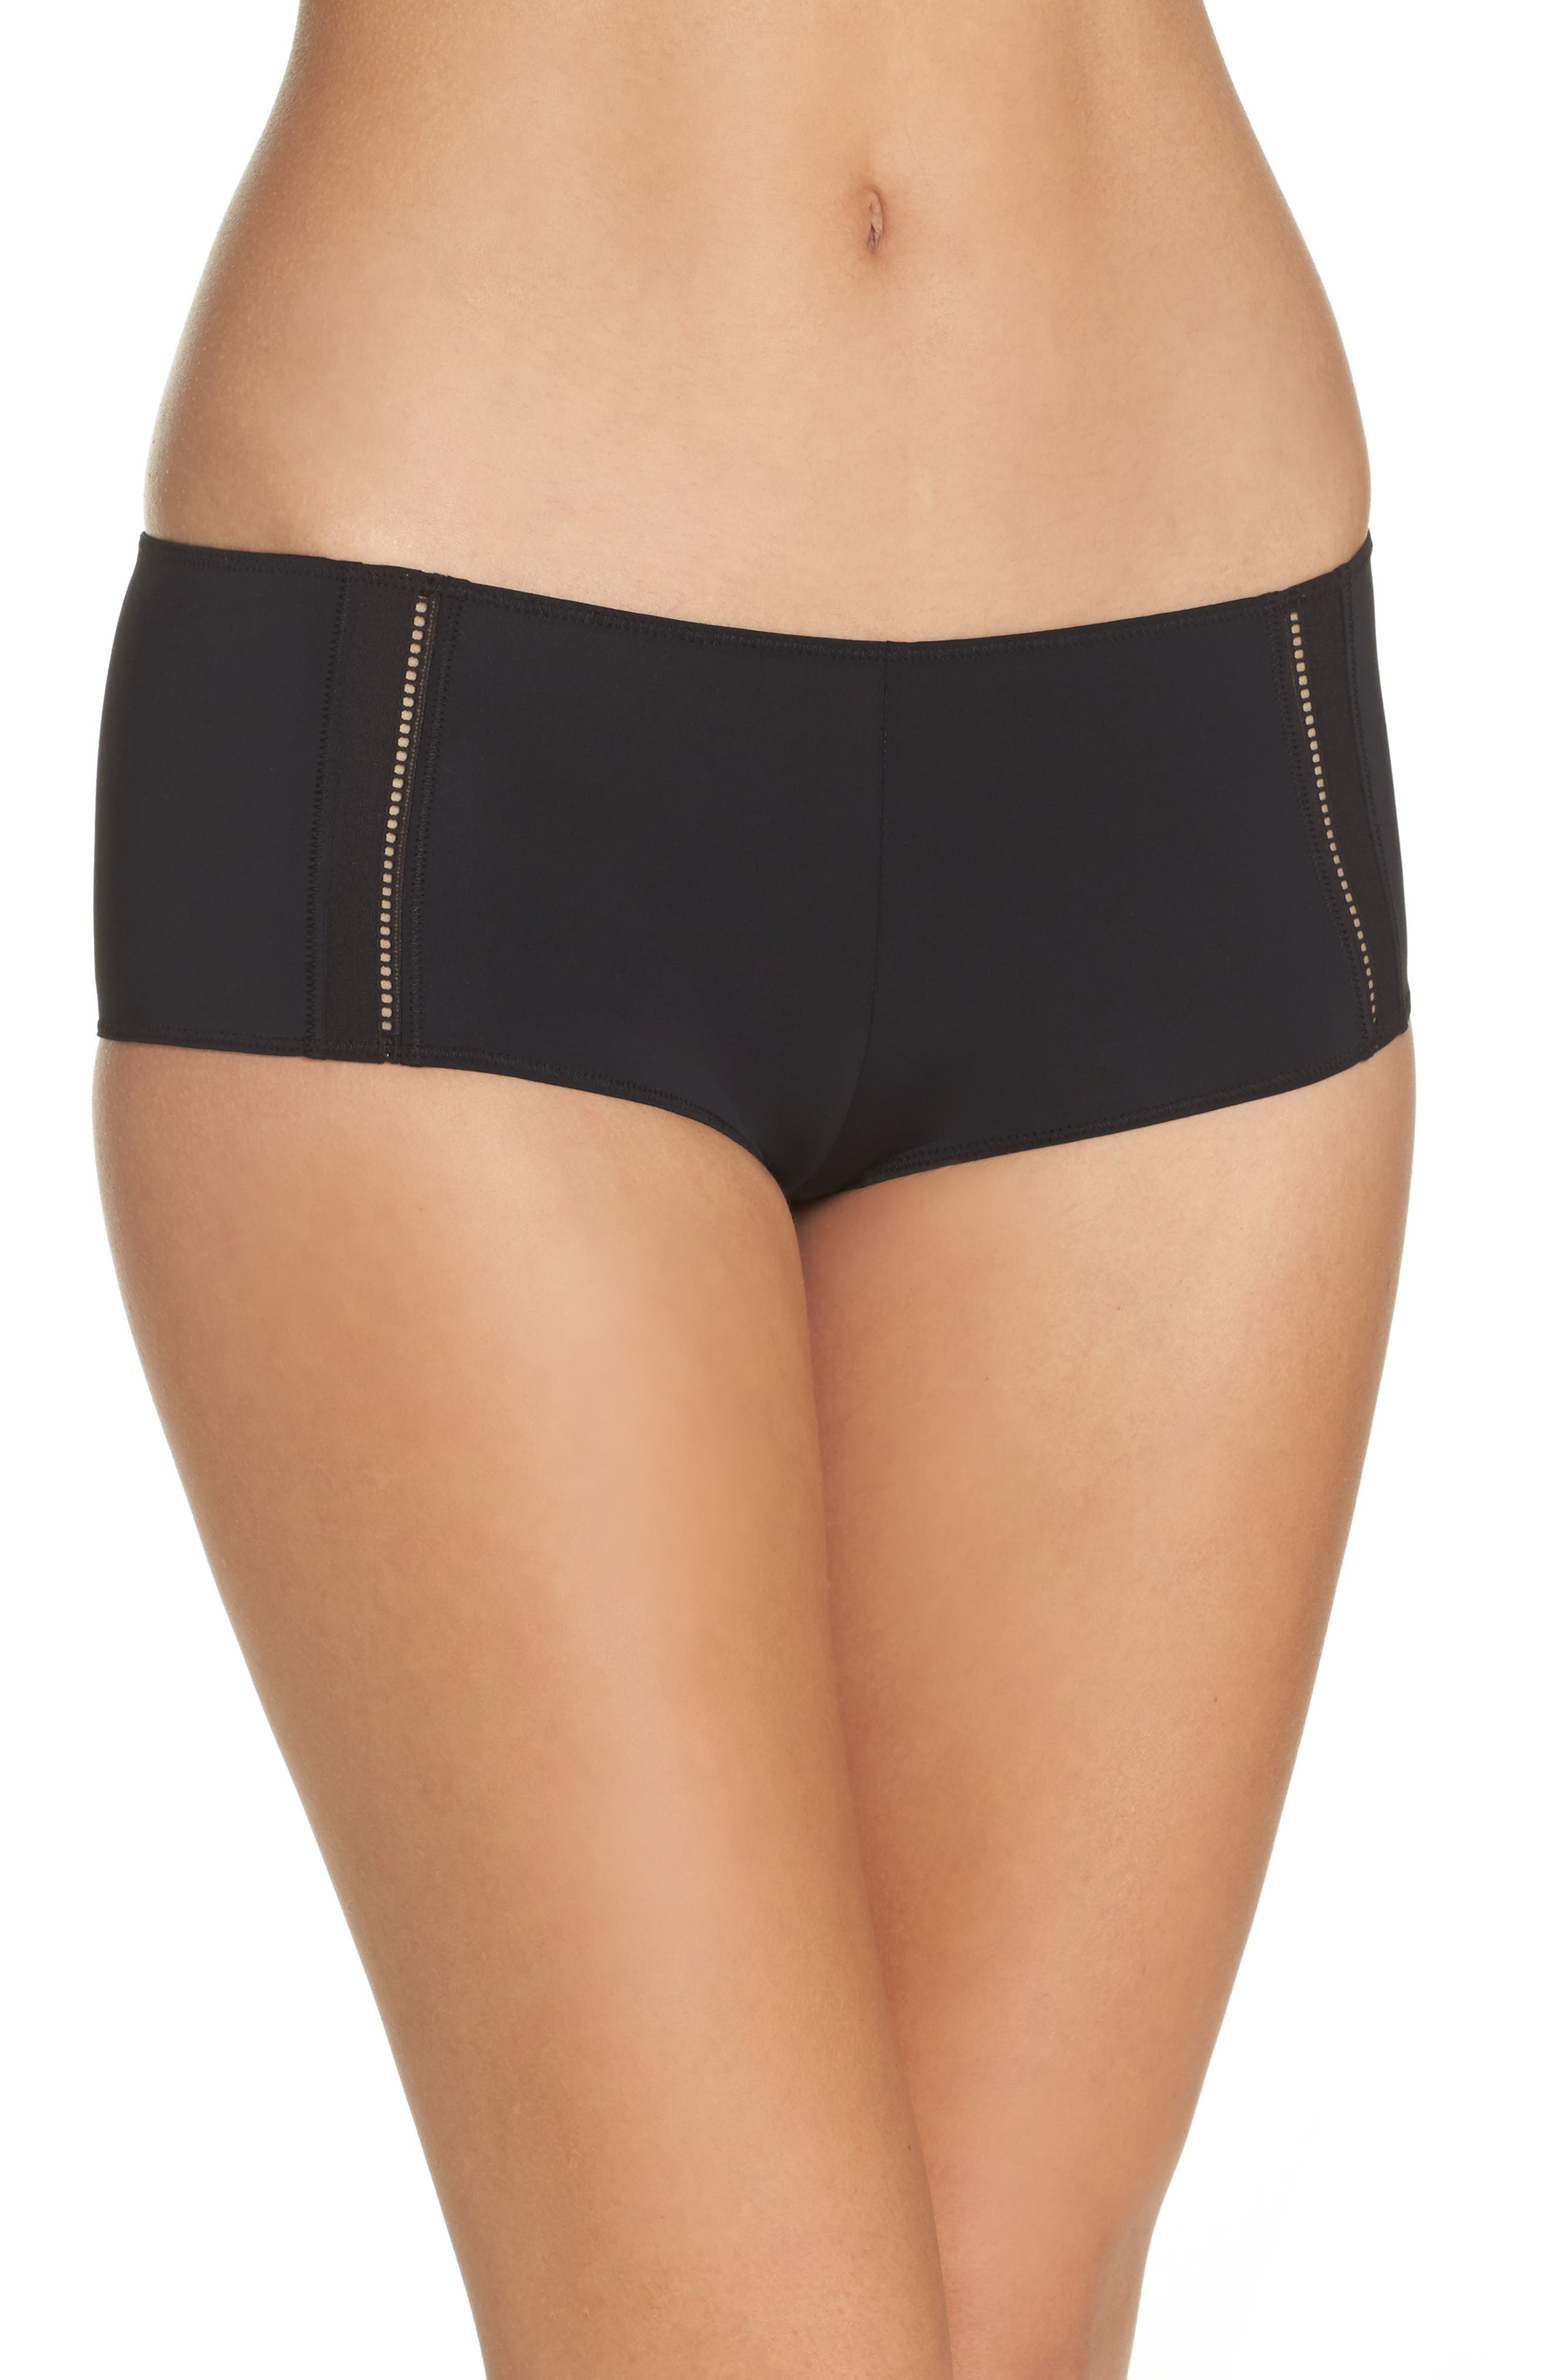 Intimately FP Truth or Dare Boyshorts,                             Main thumbnail 1, color,                             001